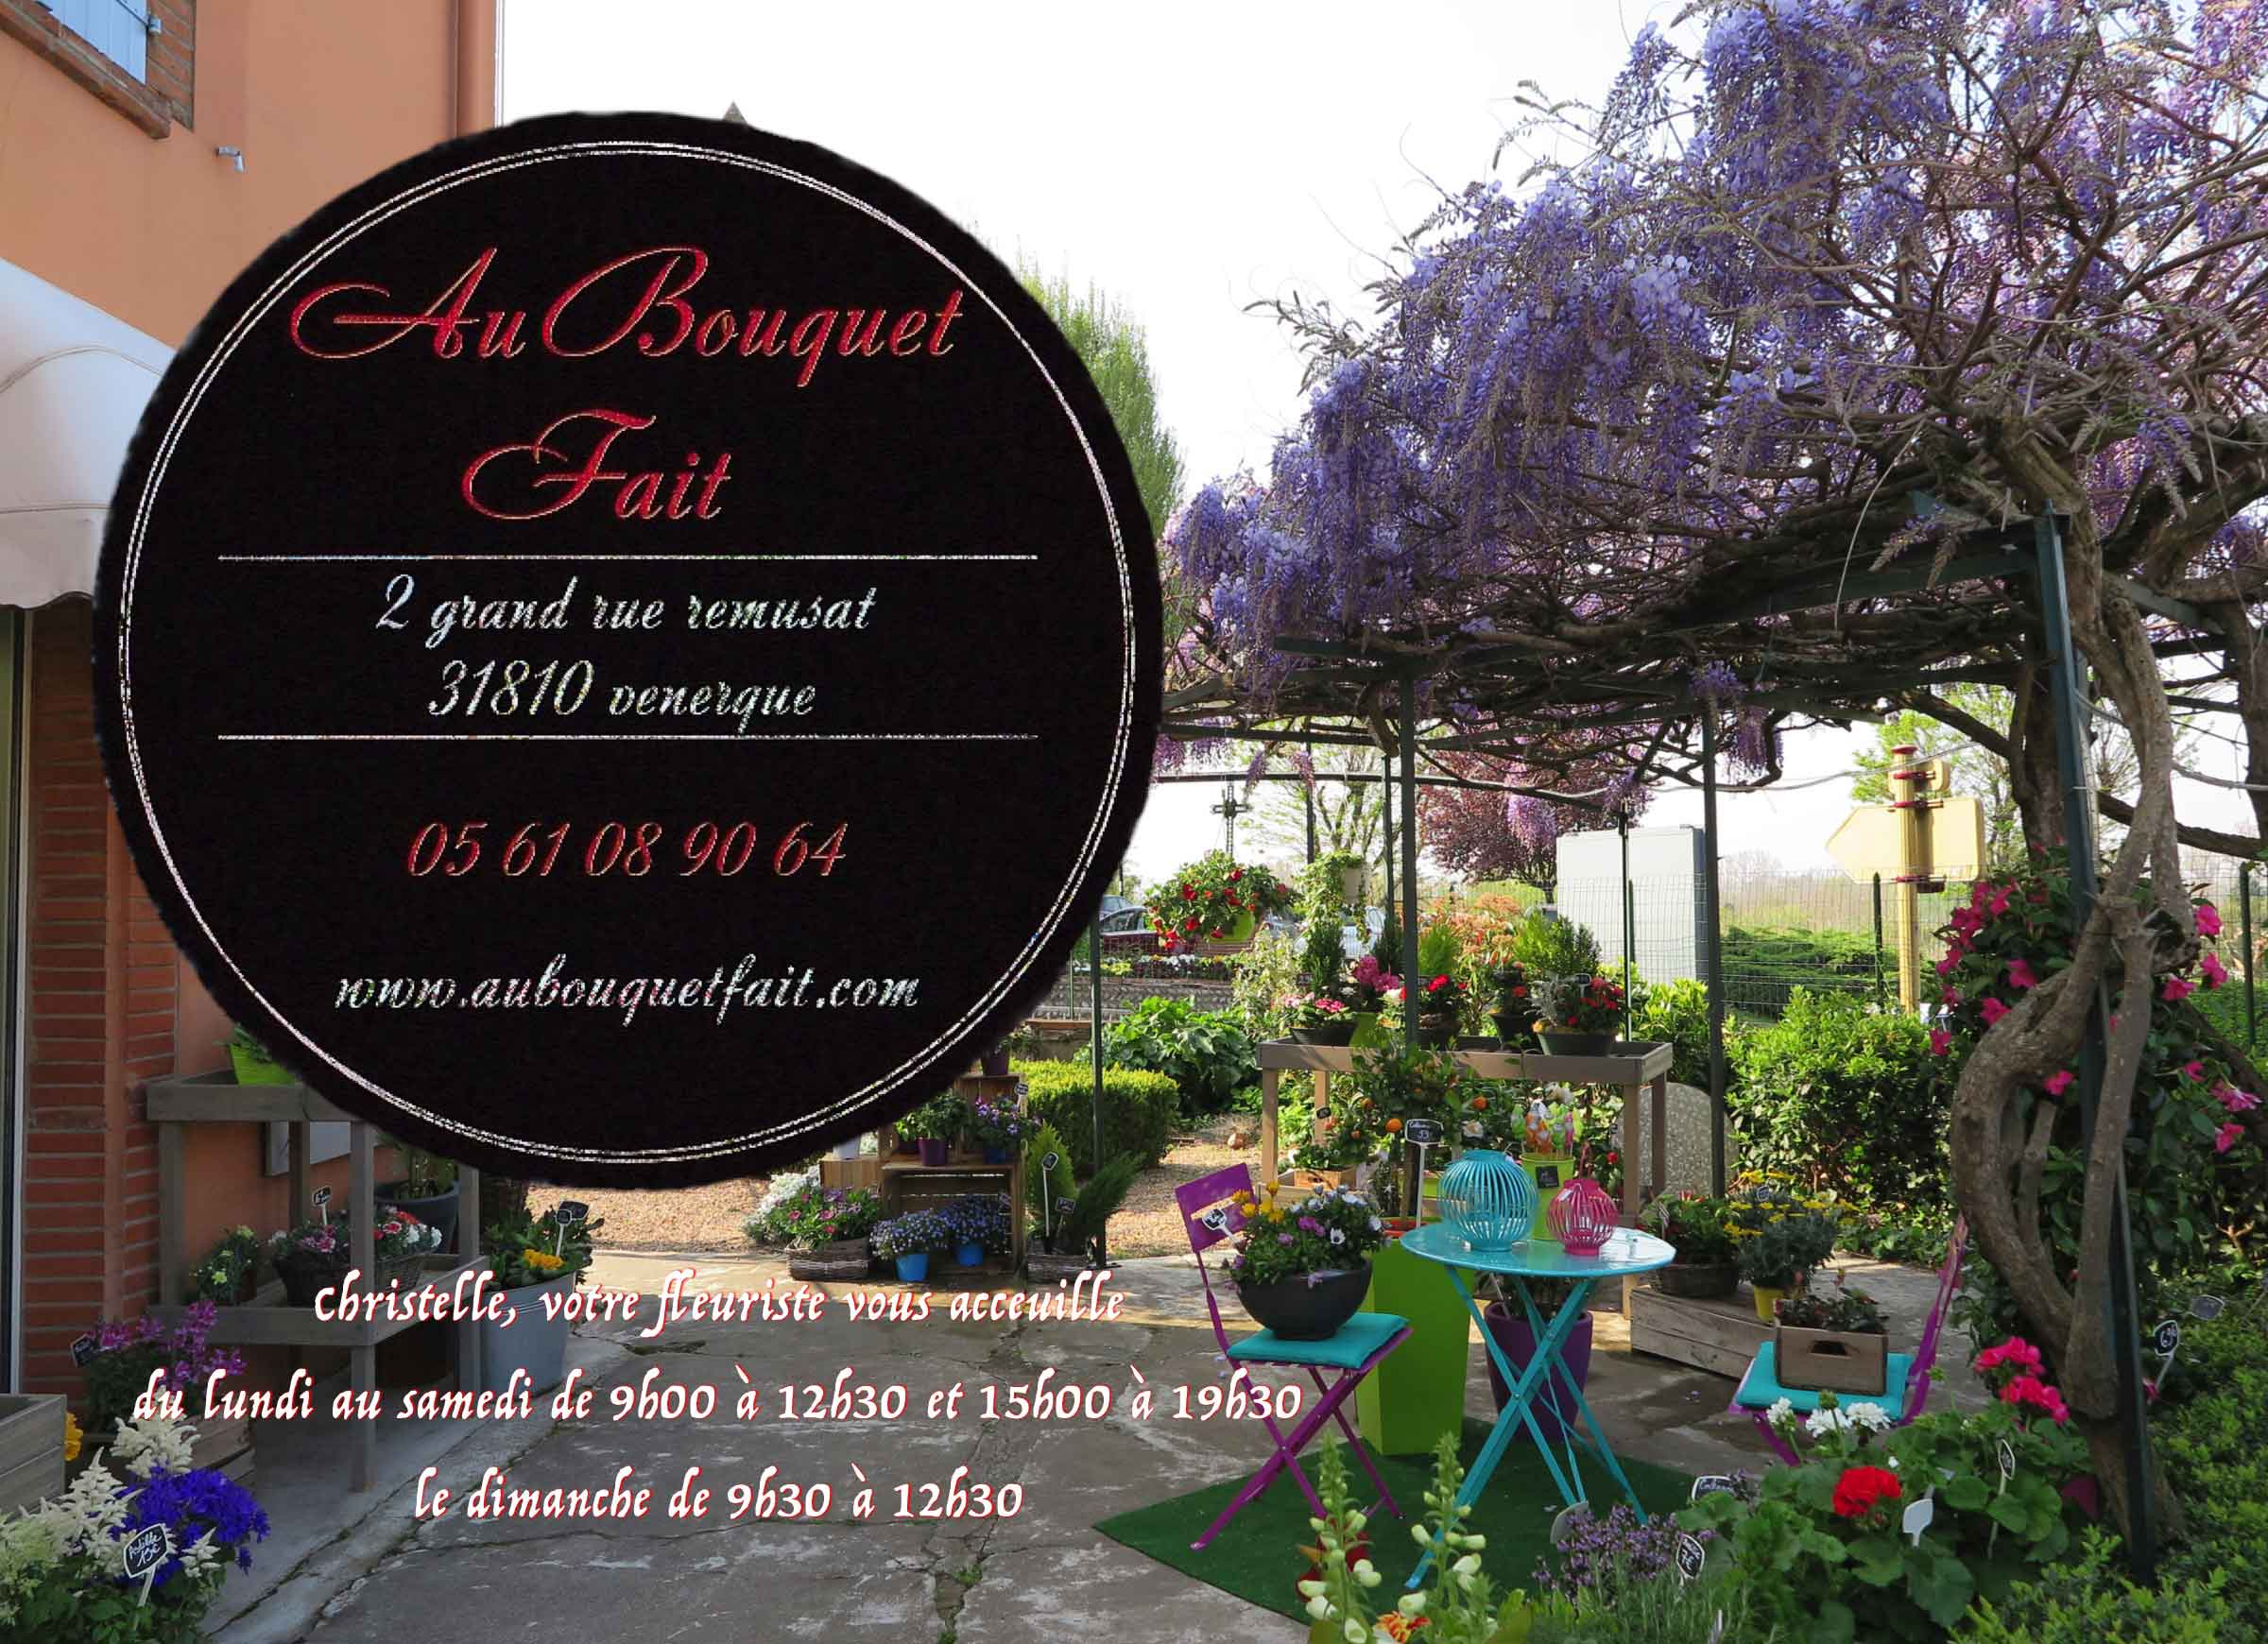 https://foh31.fr/wp-content/uploads/2018/01/Au-bouquet-fait.jpg